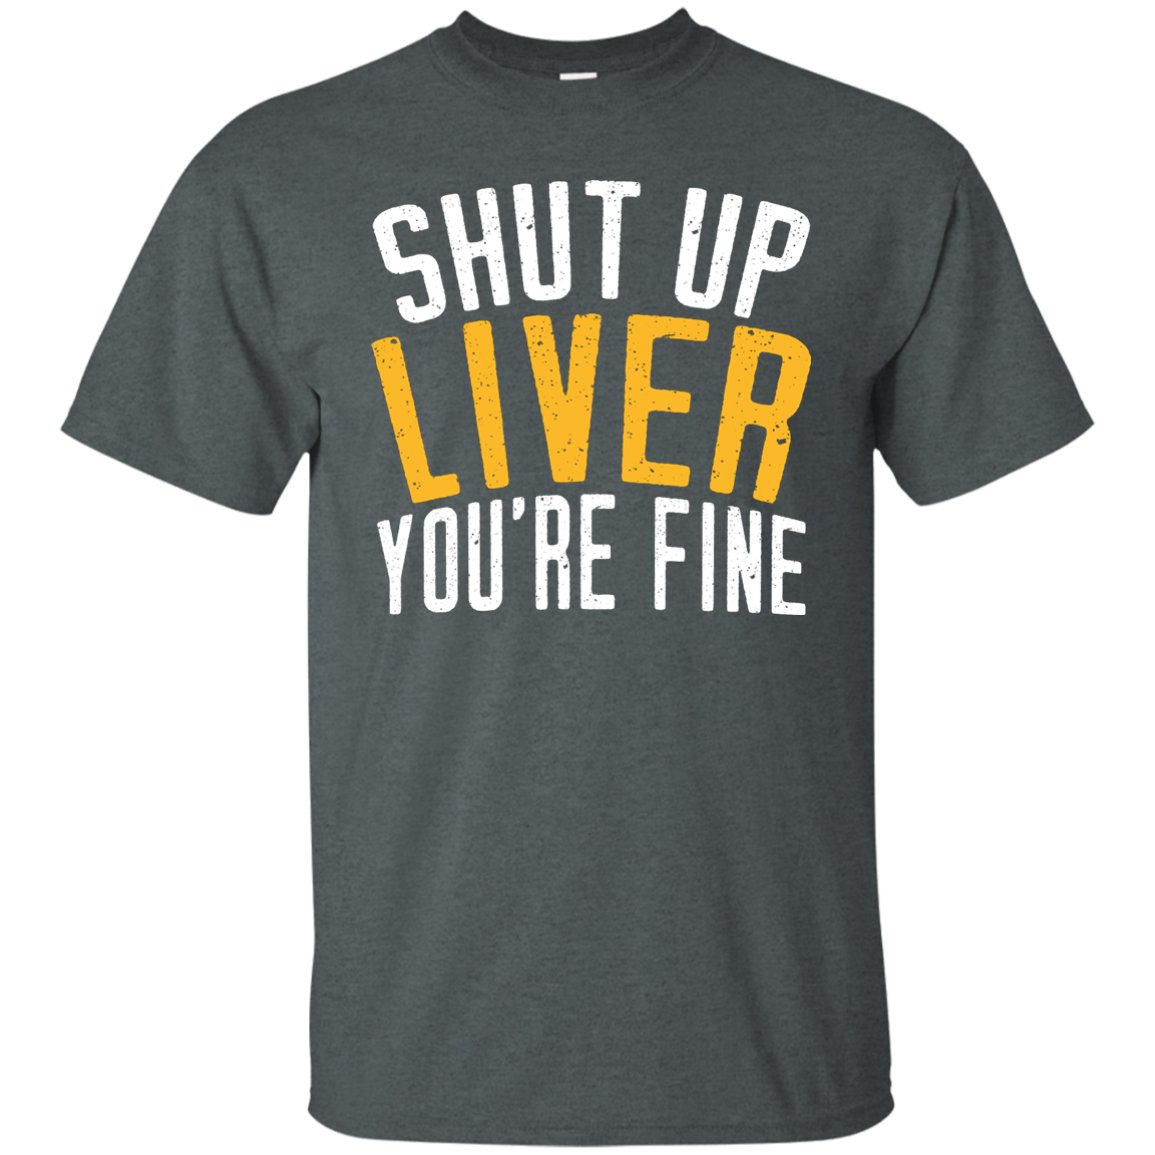 Shut Up Liver You're Fine - Funny Drinking Quote T-Shirt